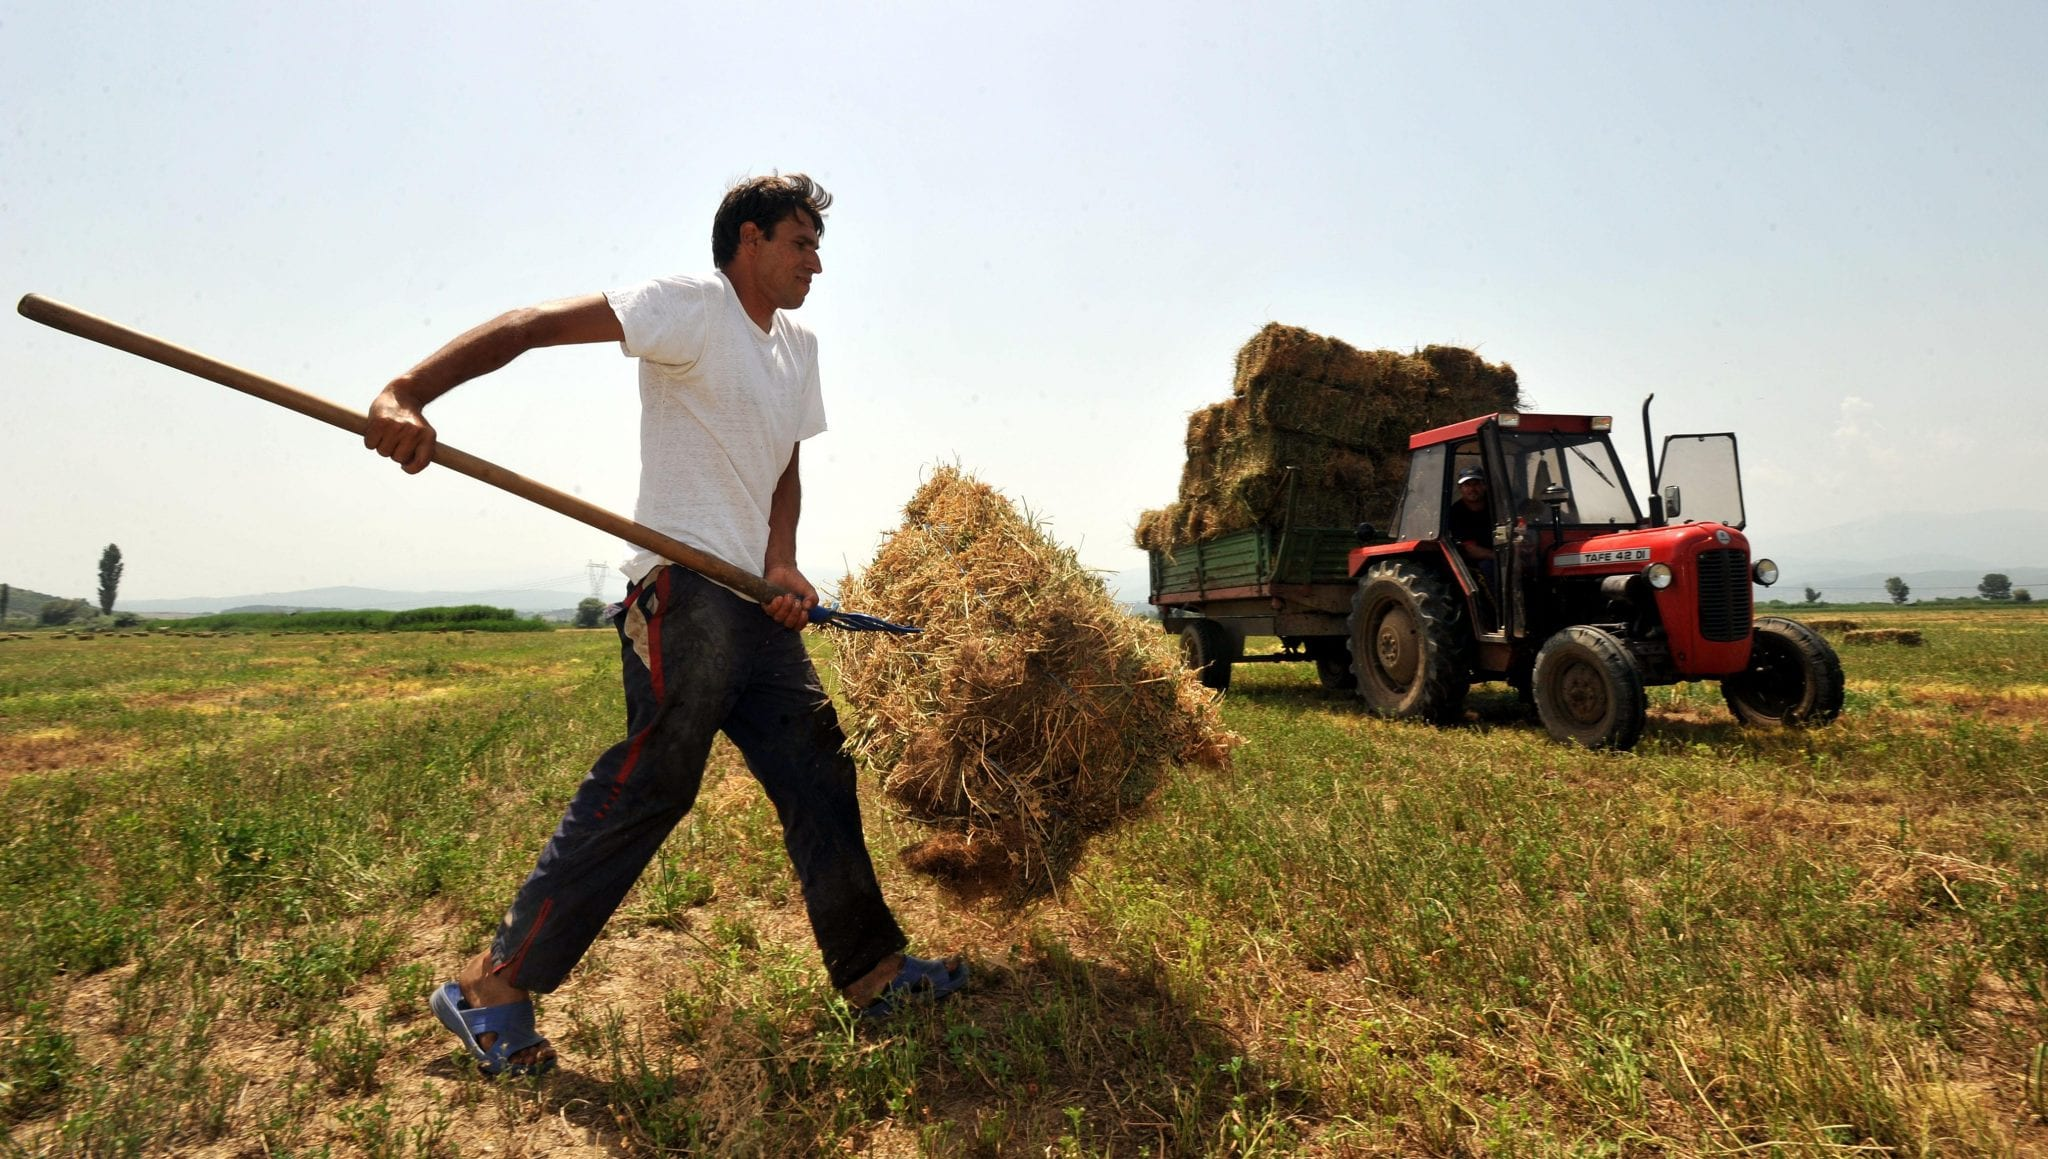 An unidentified farmer collects a bale of hay near southeastern Macedonian village of Stojakovo, on Monday, June 14, 2010.   (AP Photo/Boris Grdanoski)